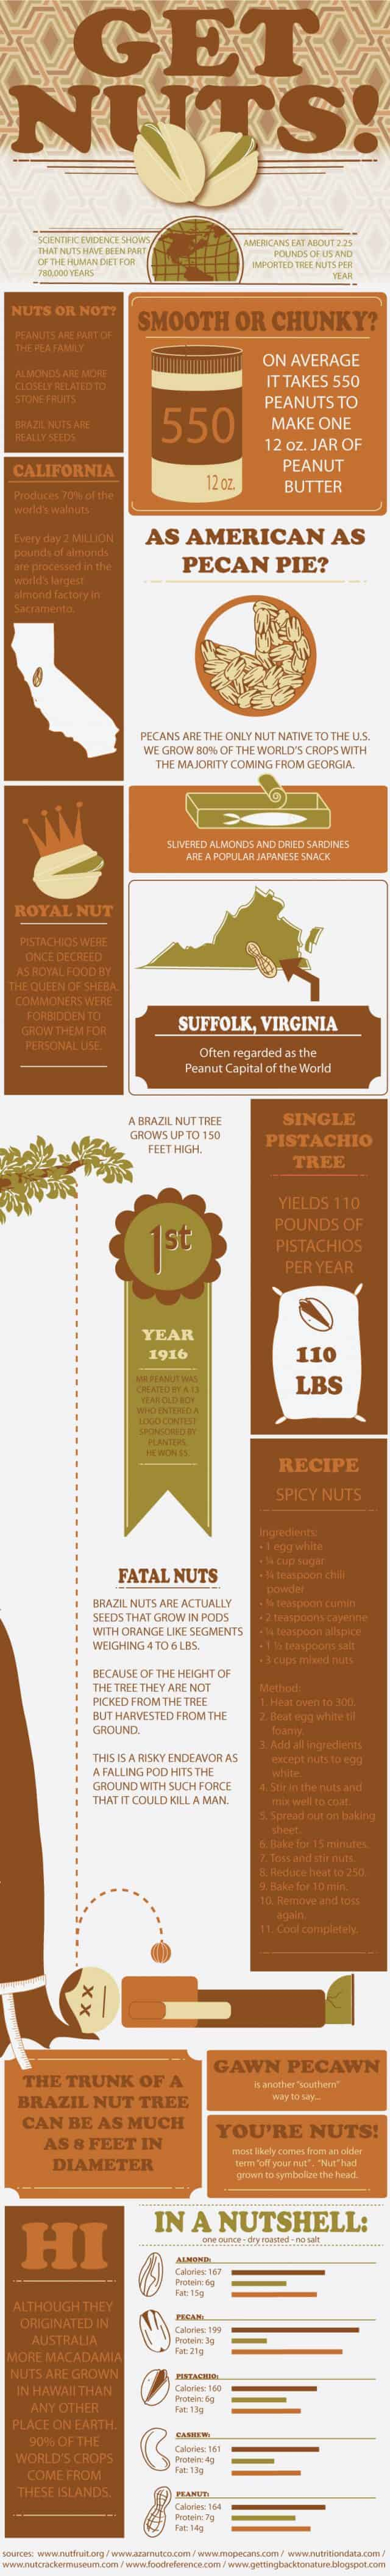 Get Nuts! [infographic]